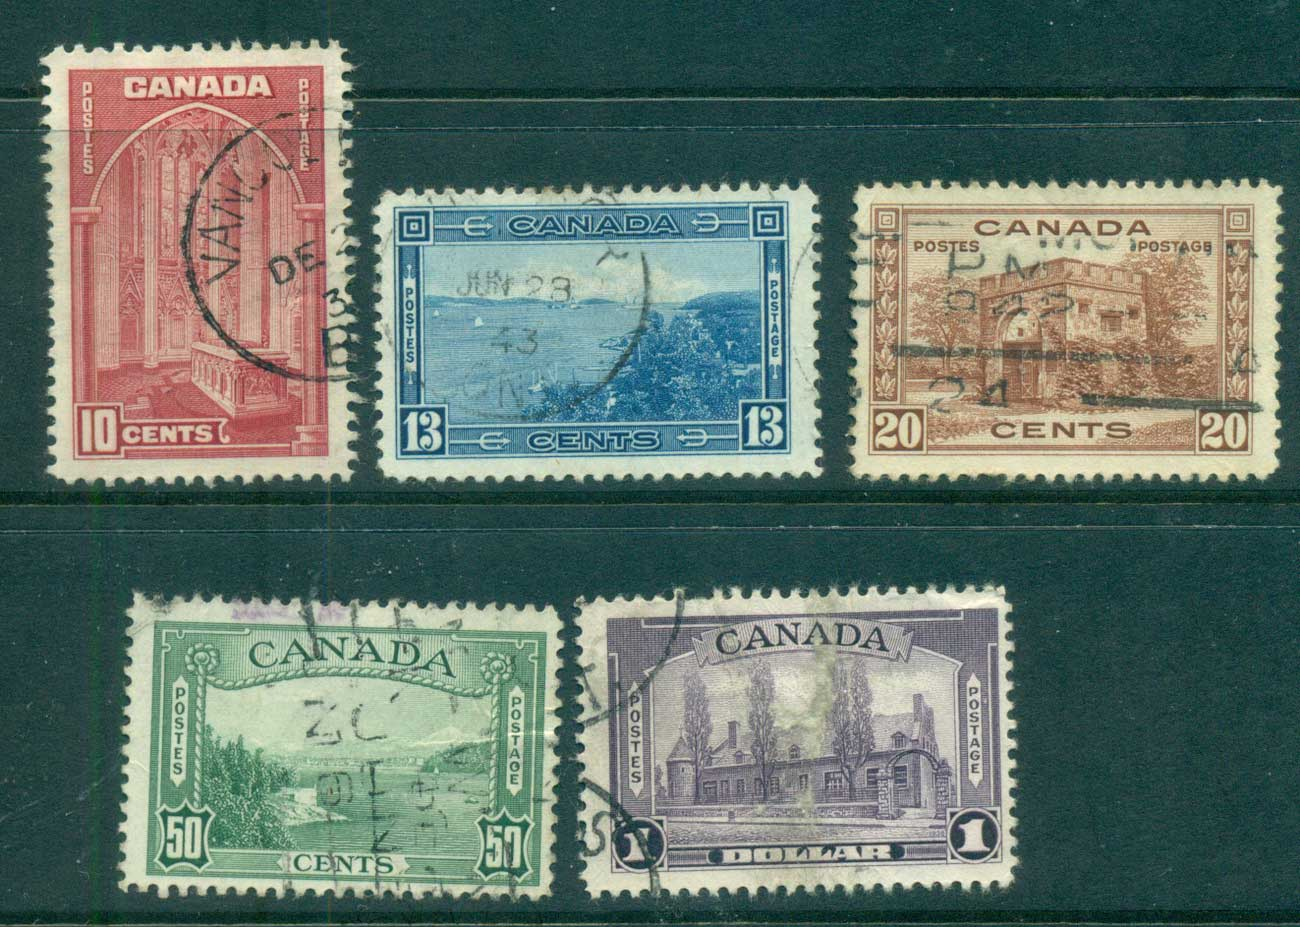 Canada 1938 KGVI Pictorials FU lot68196